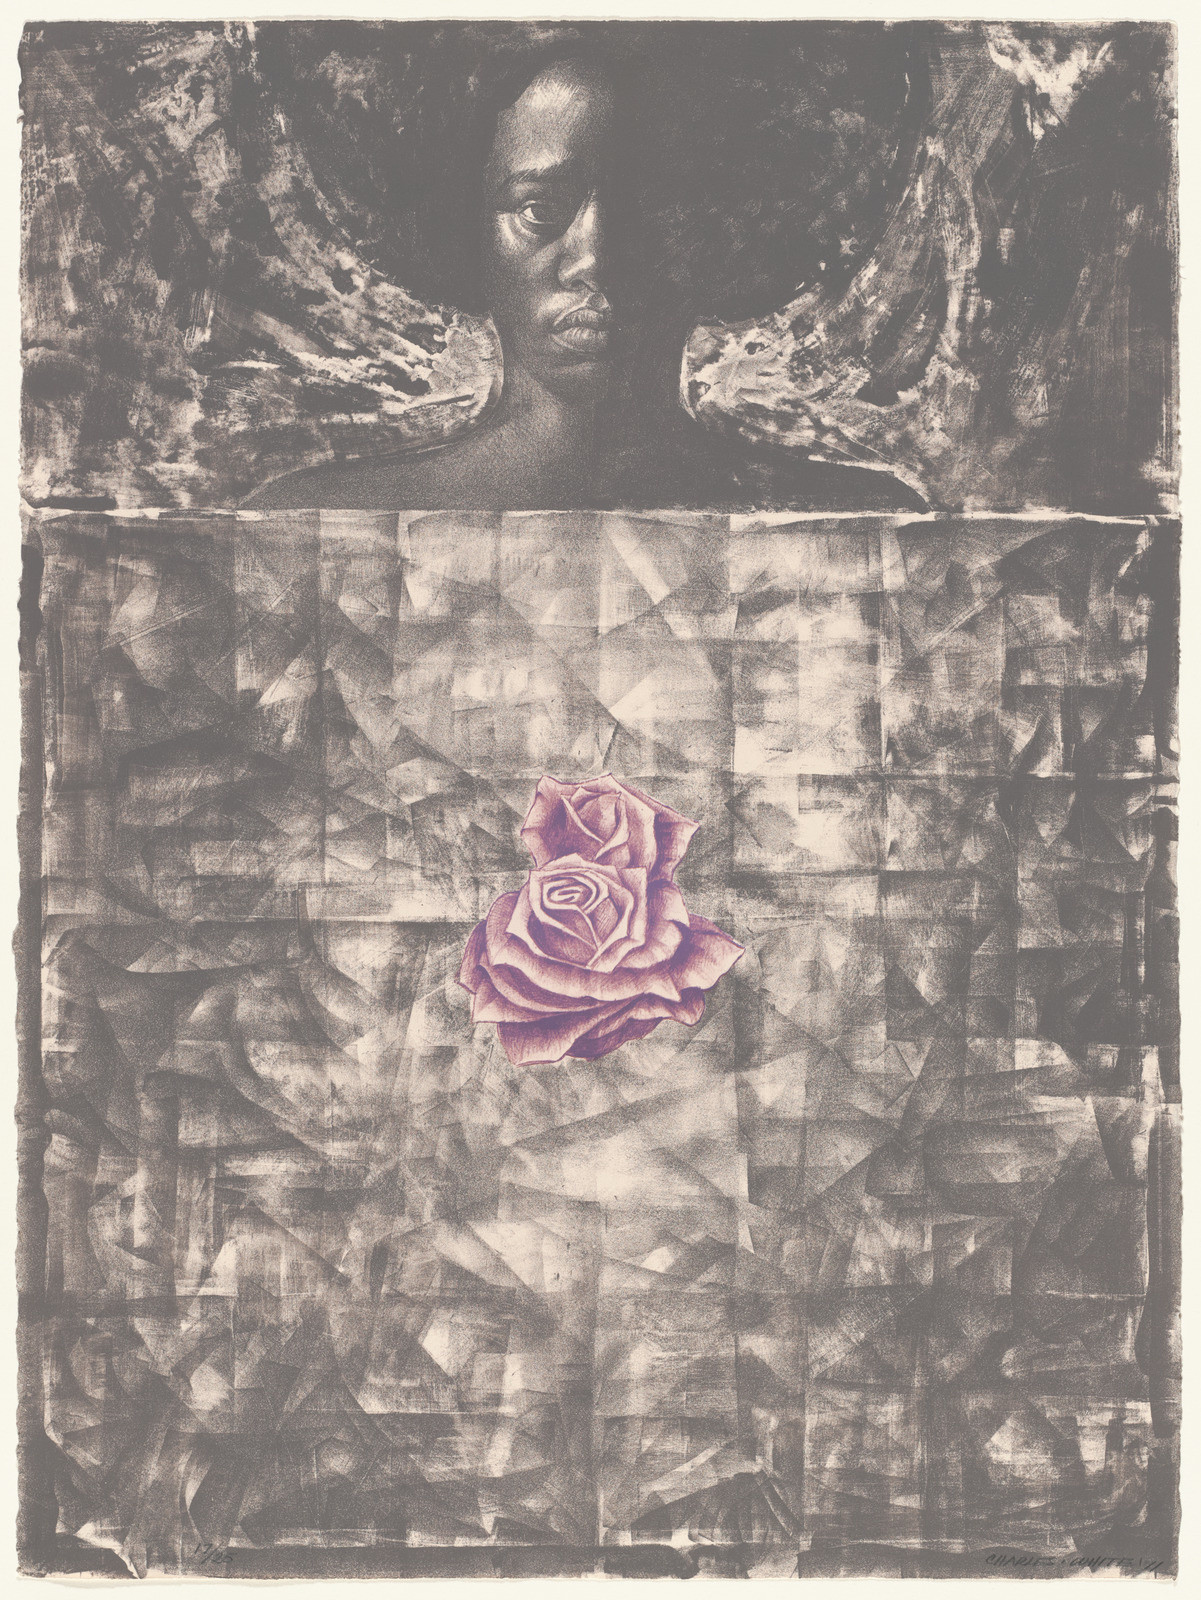 "Charles White. _Love Letter I_. 1971. Lithograph, 30 1/16 x 22 3/8"" (76.4 x 56.8 cm). The Museum of Modern Art, New York. John B. Turner Fund. © The Charles White Archives/ Digital Image © The Museum of Modern Art/ Licensed by SCALA/Art Resource, NY"